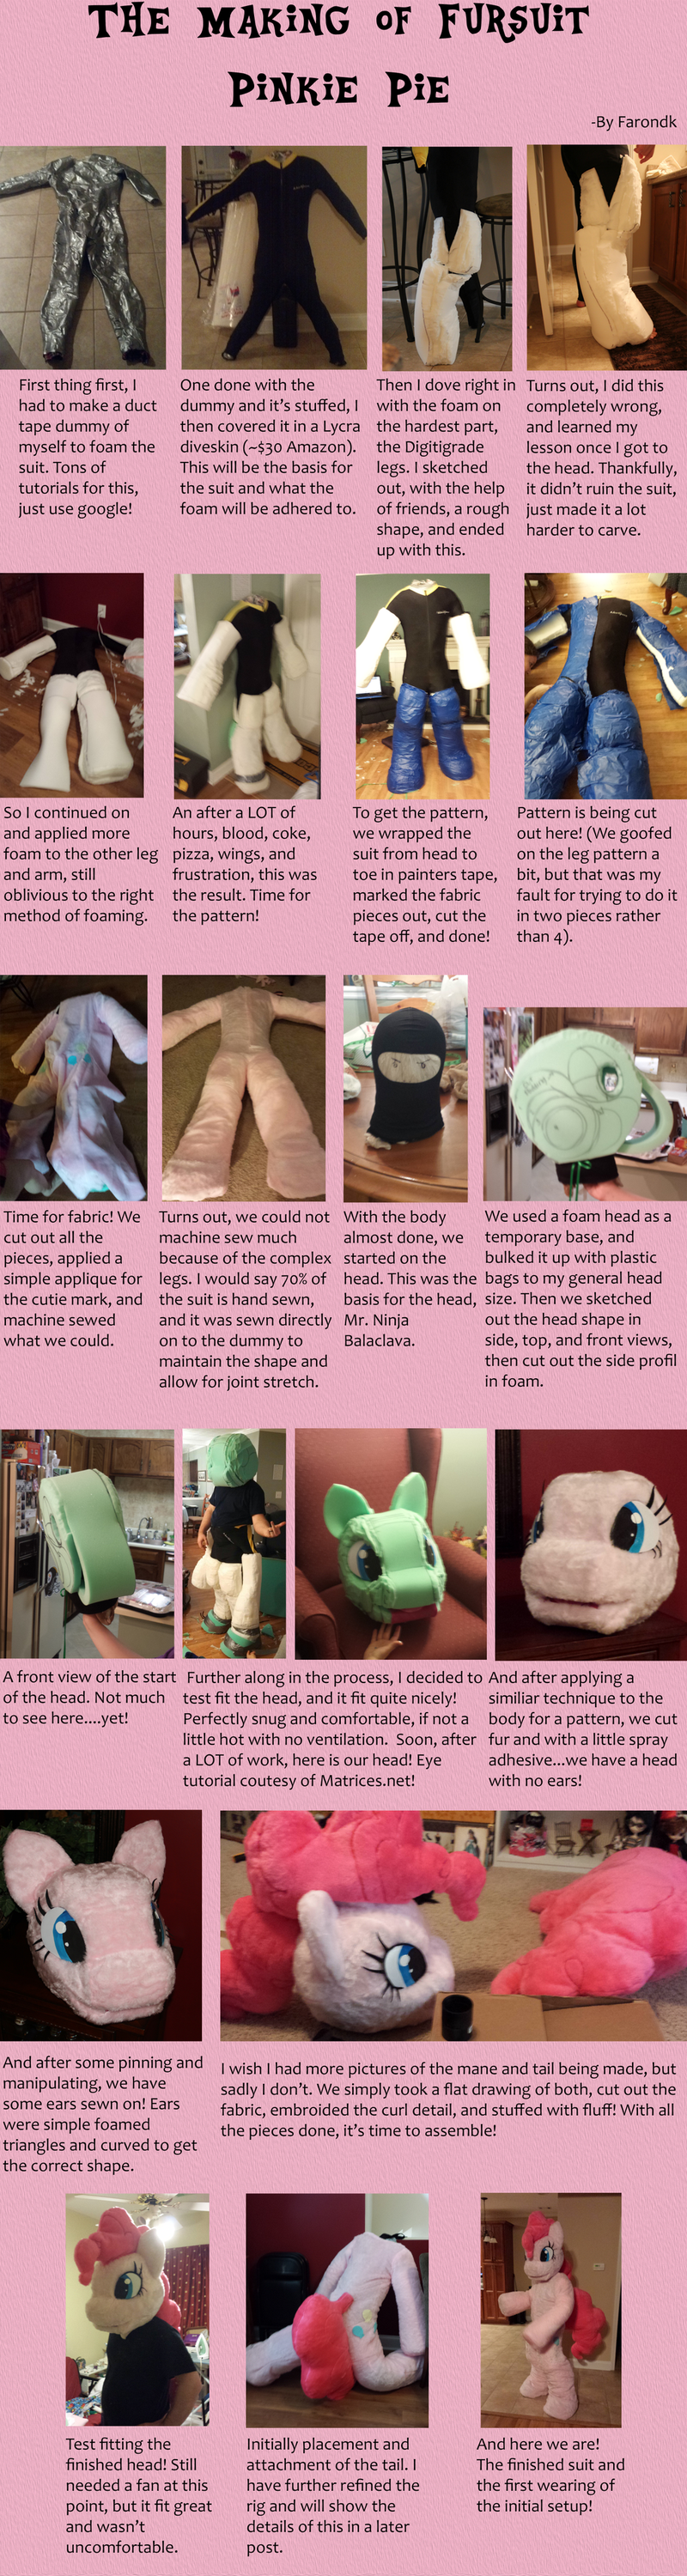 The Making of a Pinkie Pie Fursuit